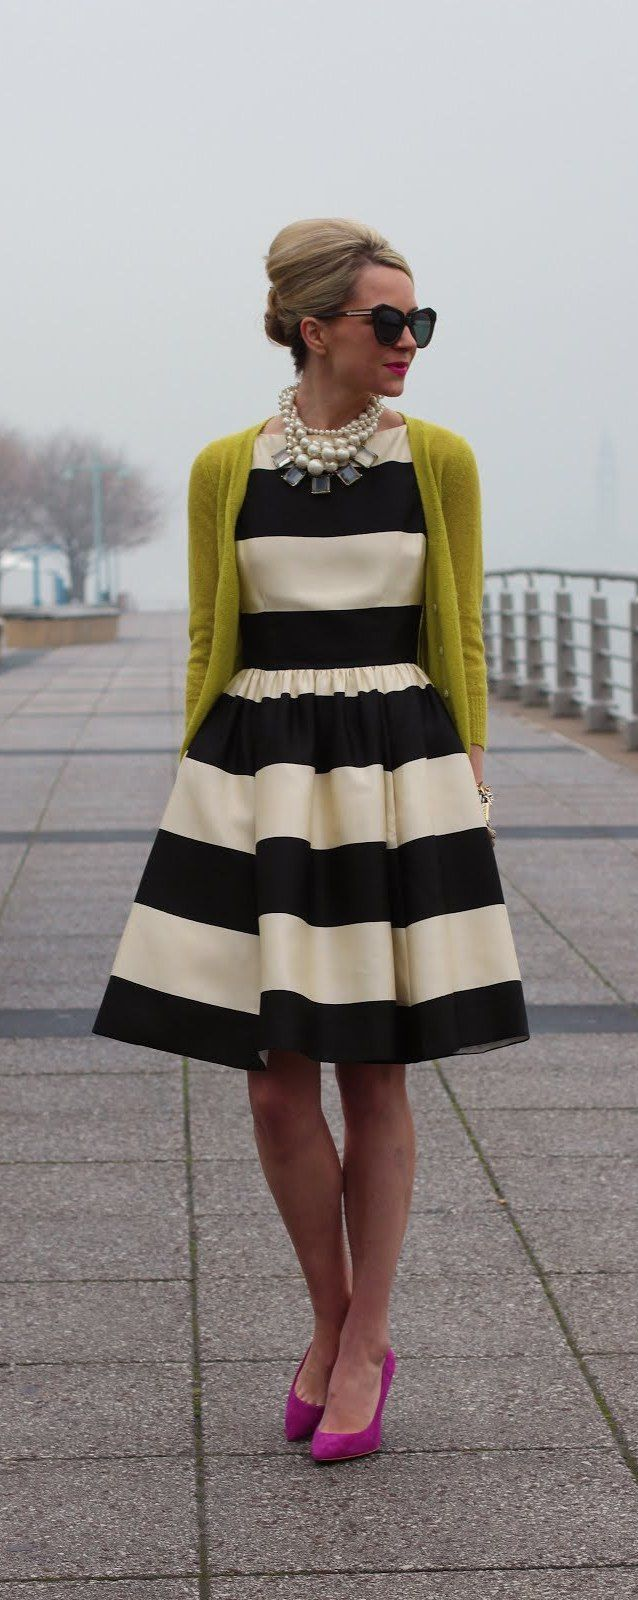 Gorgeous Kate Spade striped dress, love the pops of color from the cardigan and heels.